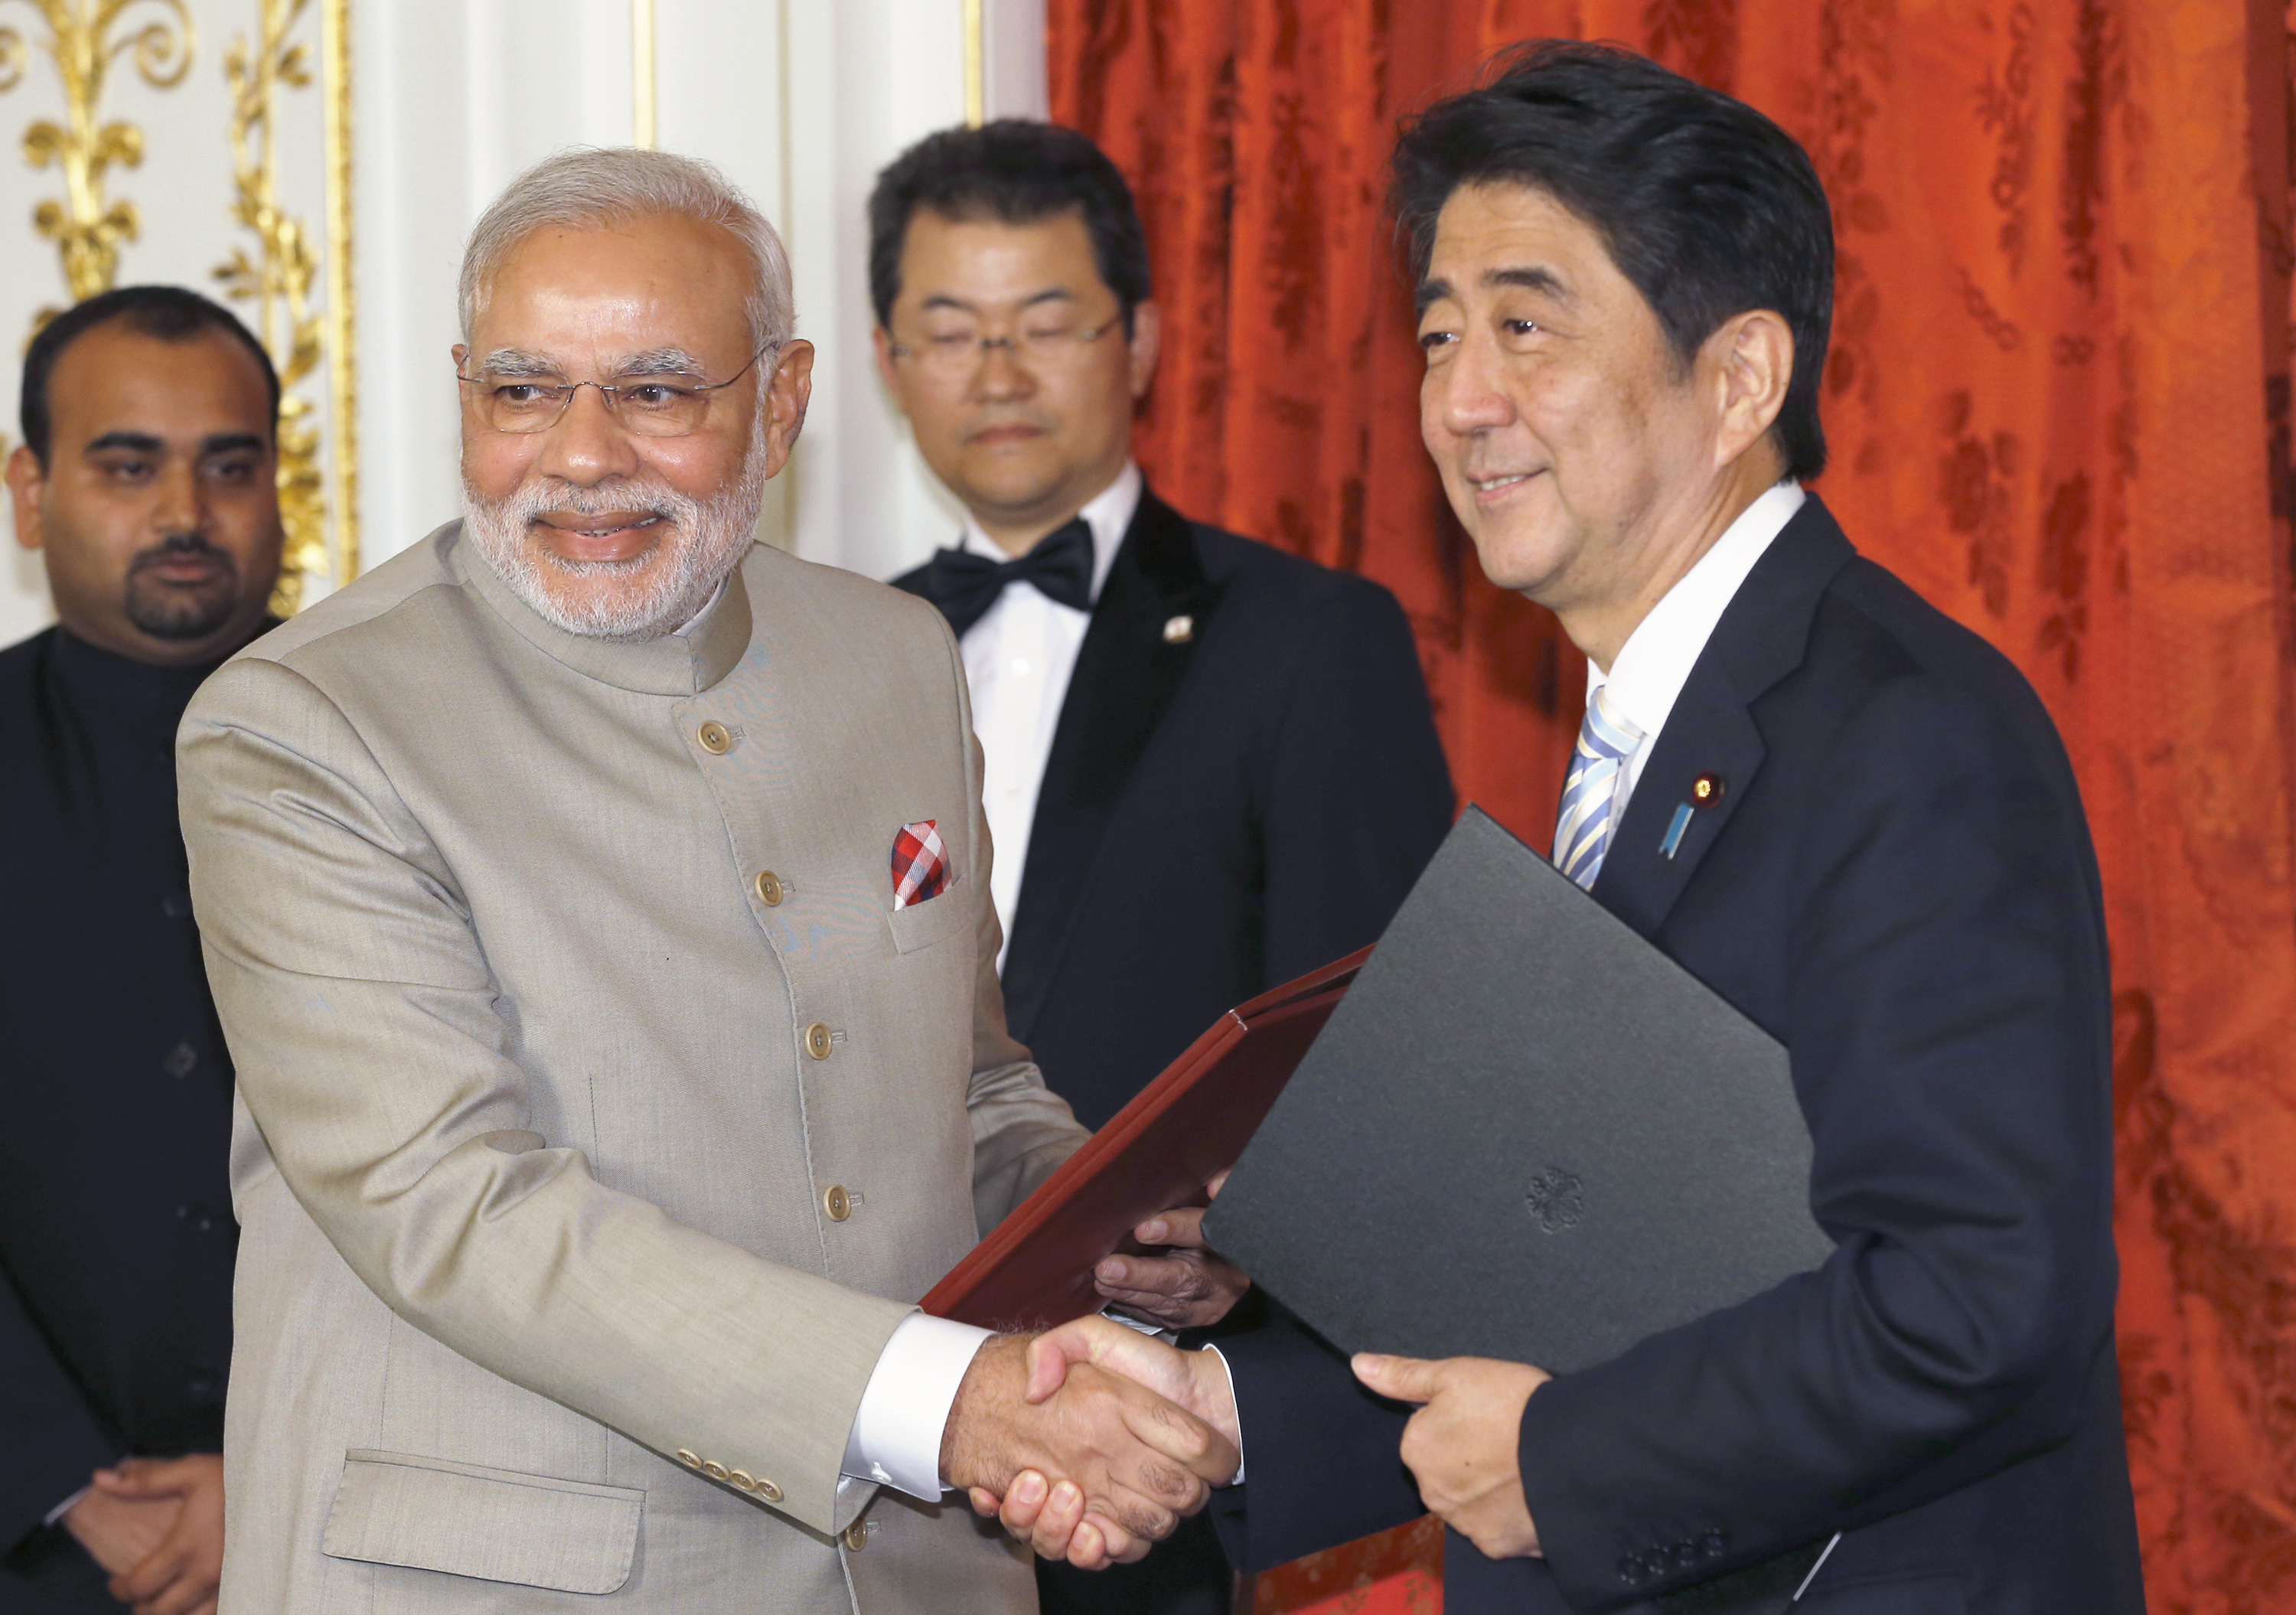 India's Prime Minister Narendra Modi, left, shakes hands with Japan's Prime Minister Shinzo Abe during a signing ceremony in Tokyo on Sept. 1, 2014